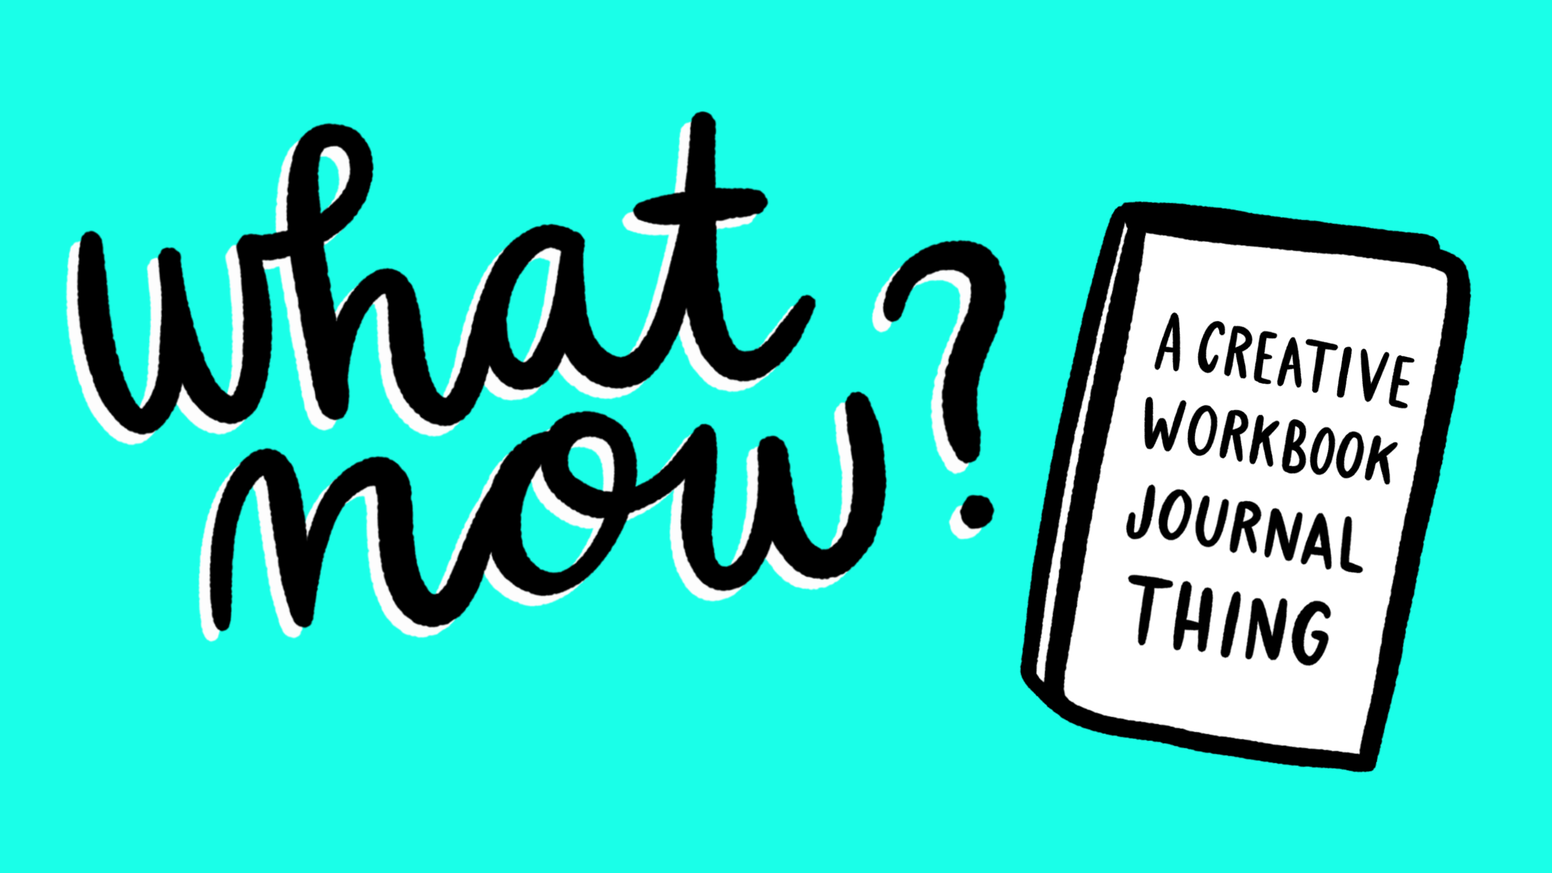 What Now? A Creative Workbook Journal Thing by Alyse Ruriani ...